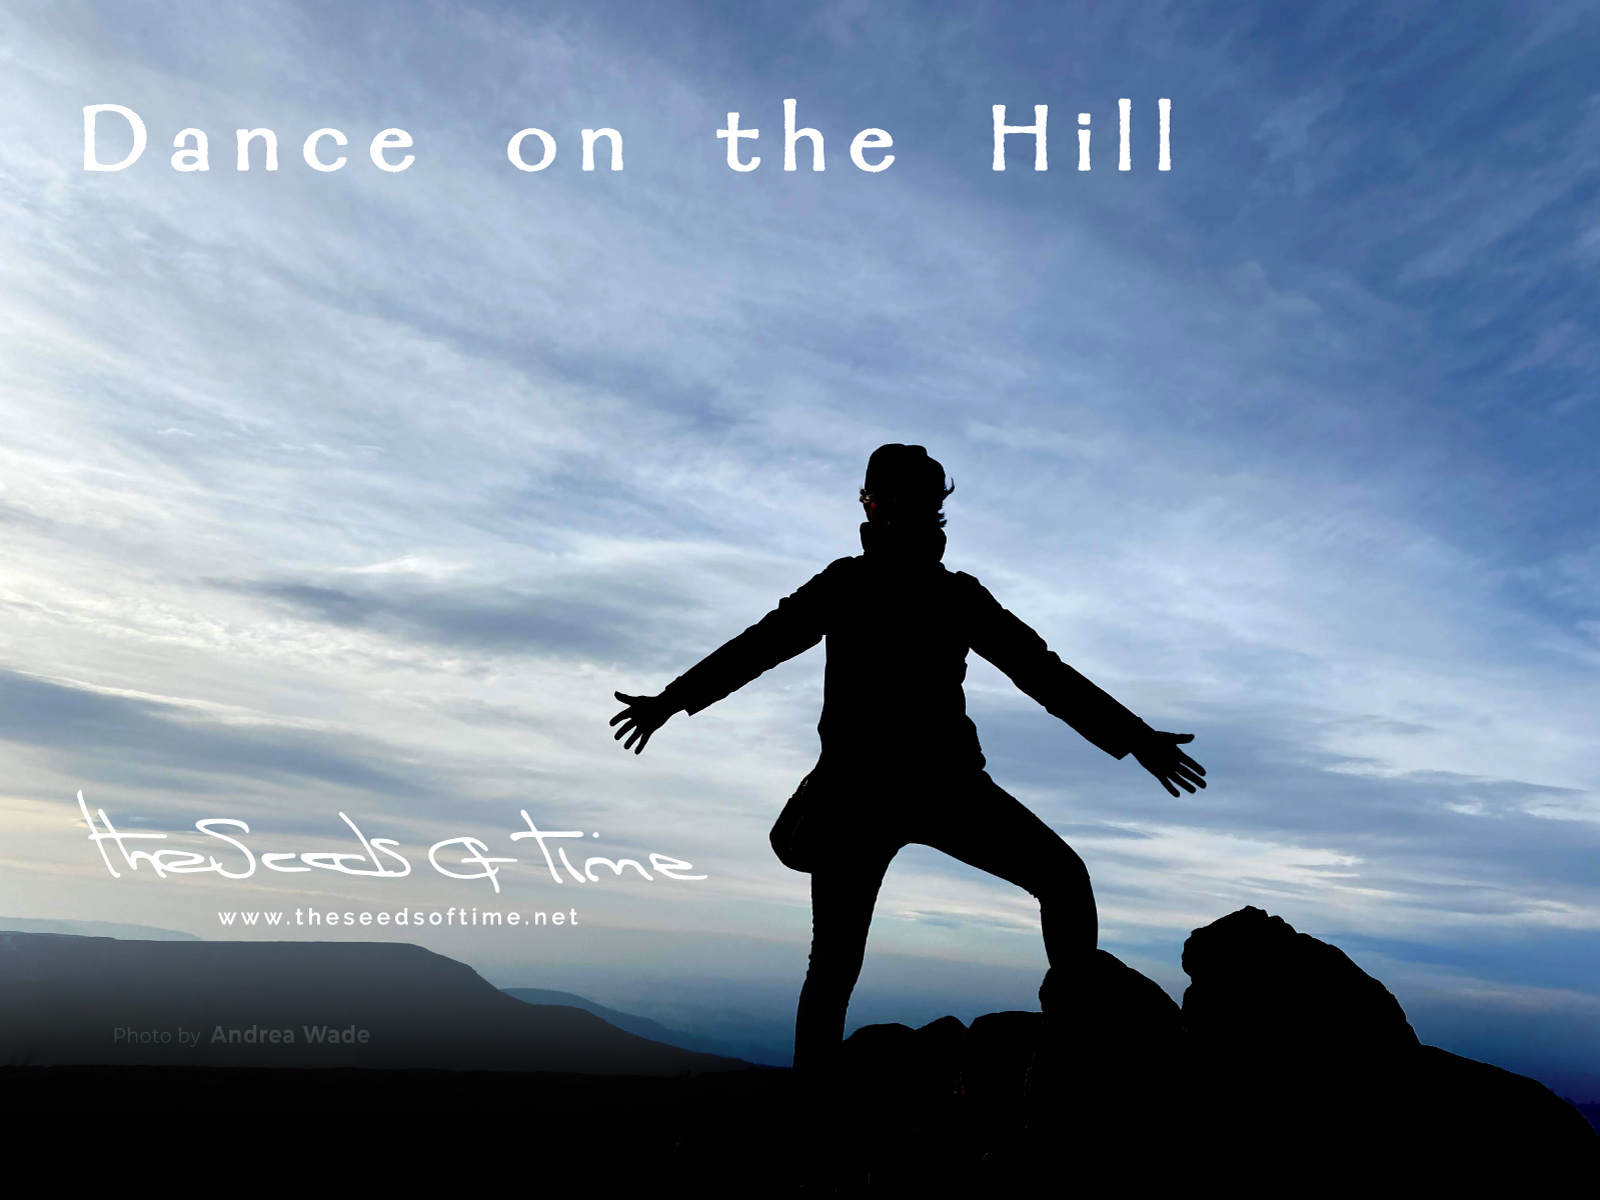 Photograph by Andrea Wade for song 'Dance on The Hill' from album titled Random Exposure on which there is shown a silhouette of a person against a vast and open landscape behind